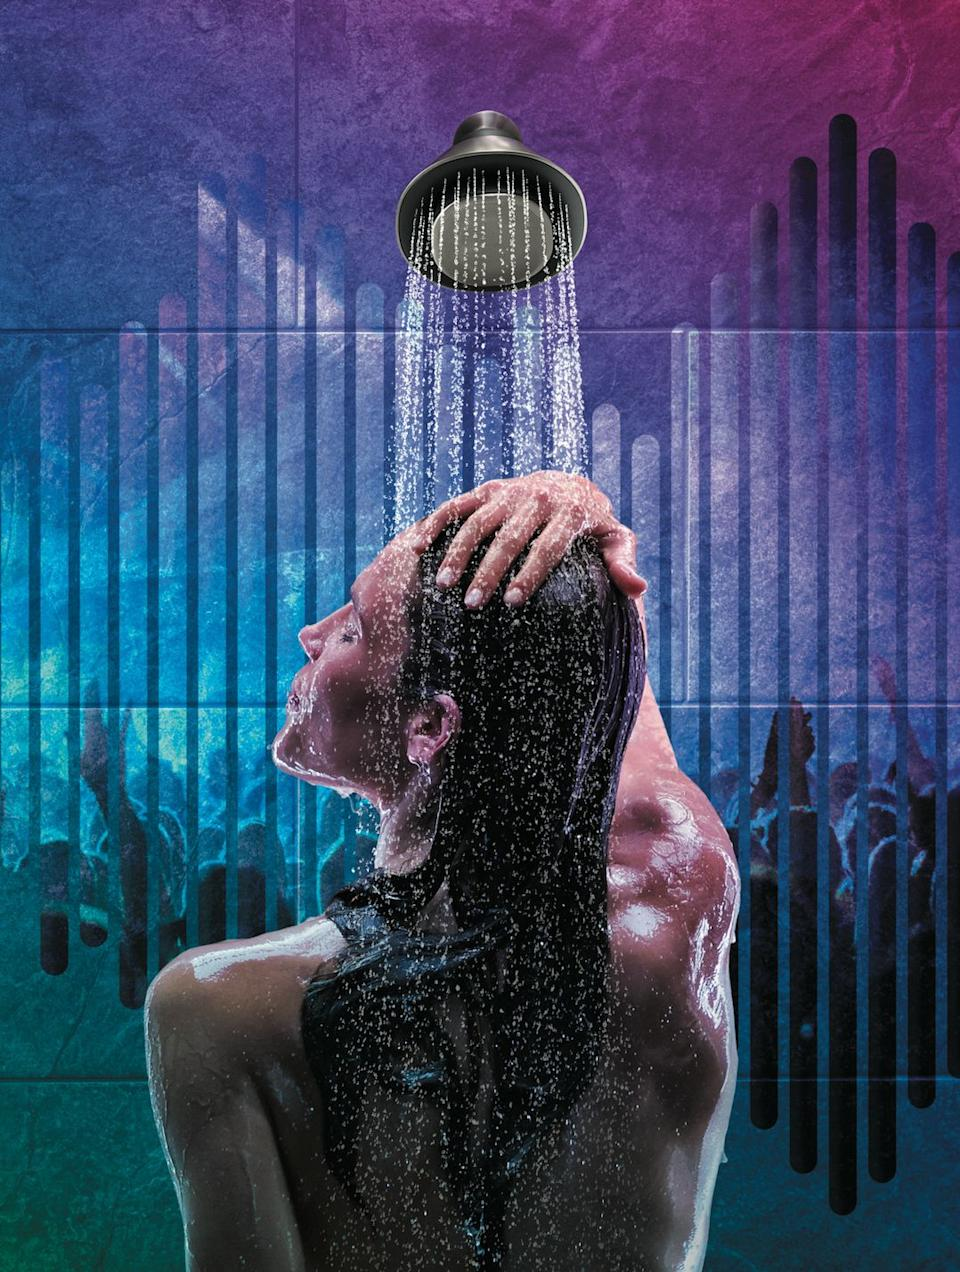 """Used to be that people sang in the shower. But thanks to <a href=""""https://www.smarthome.kohler.com/smart-shower-speaker-moxie"""" target=""""_blank"""" rel=""""noopener noreferrer"""">this showerhead that includes Bluetooth,</a> your shower now sings to you."""